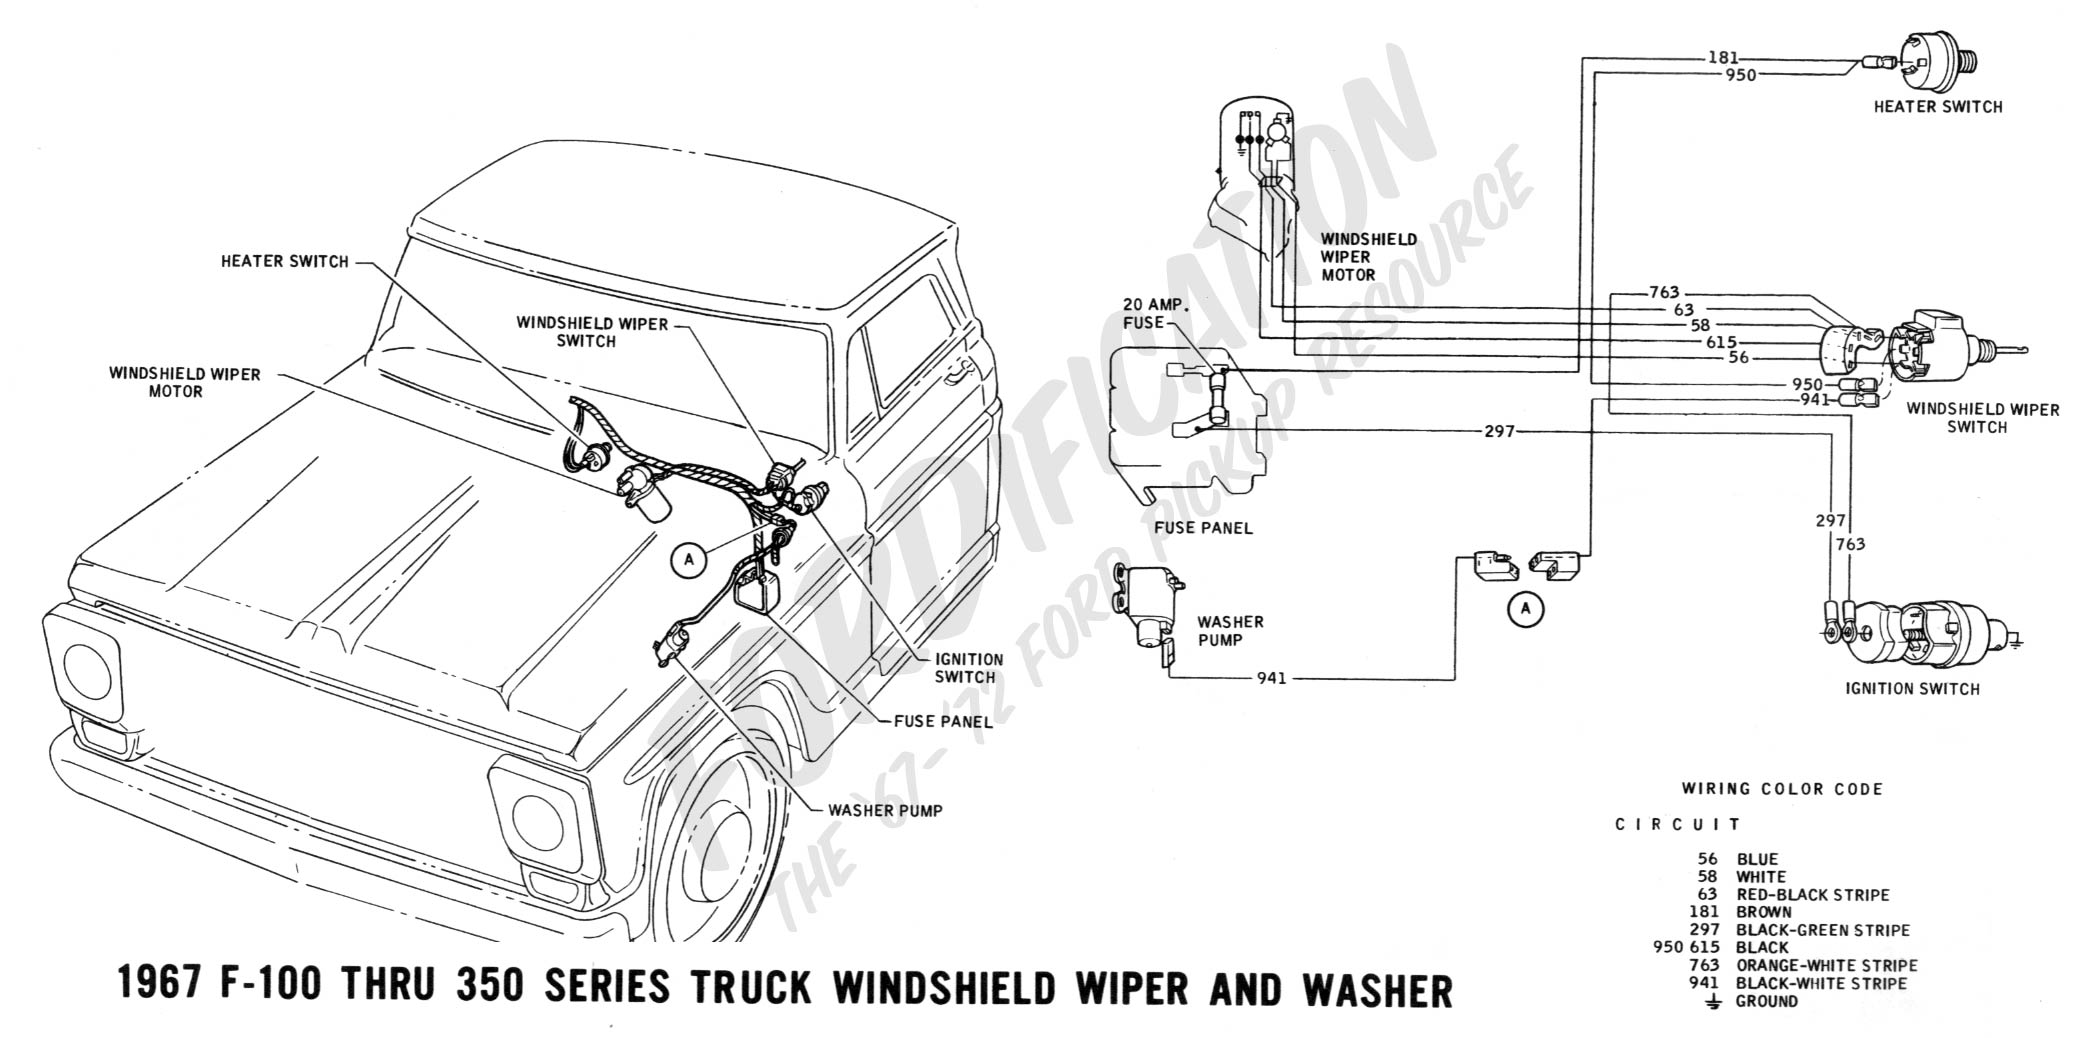 1965 Ford F 100 Instrument Panel Wiring Schematic Diagram Data 65 F100 Diagrams Truck 67 Fuse Box Library